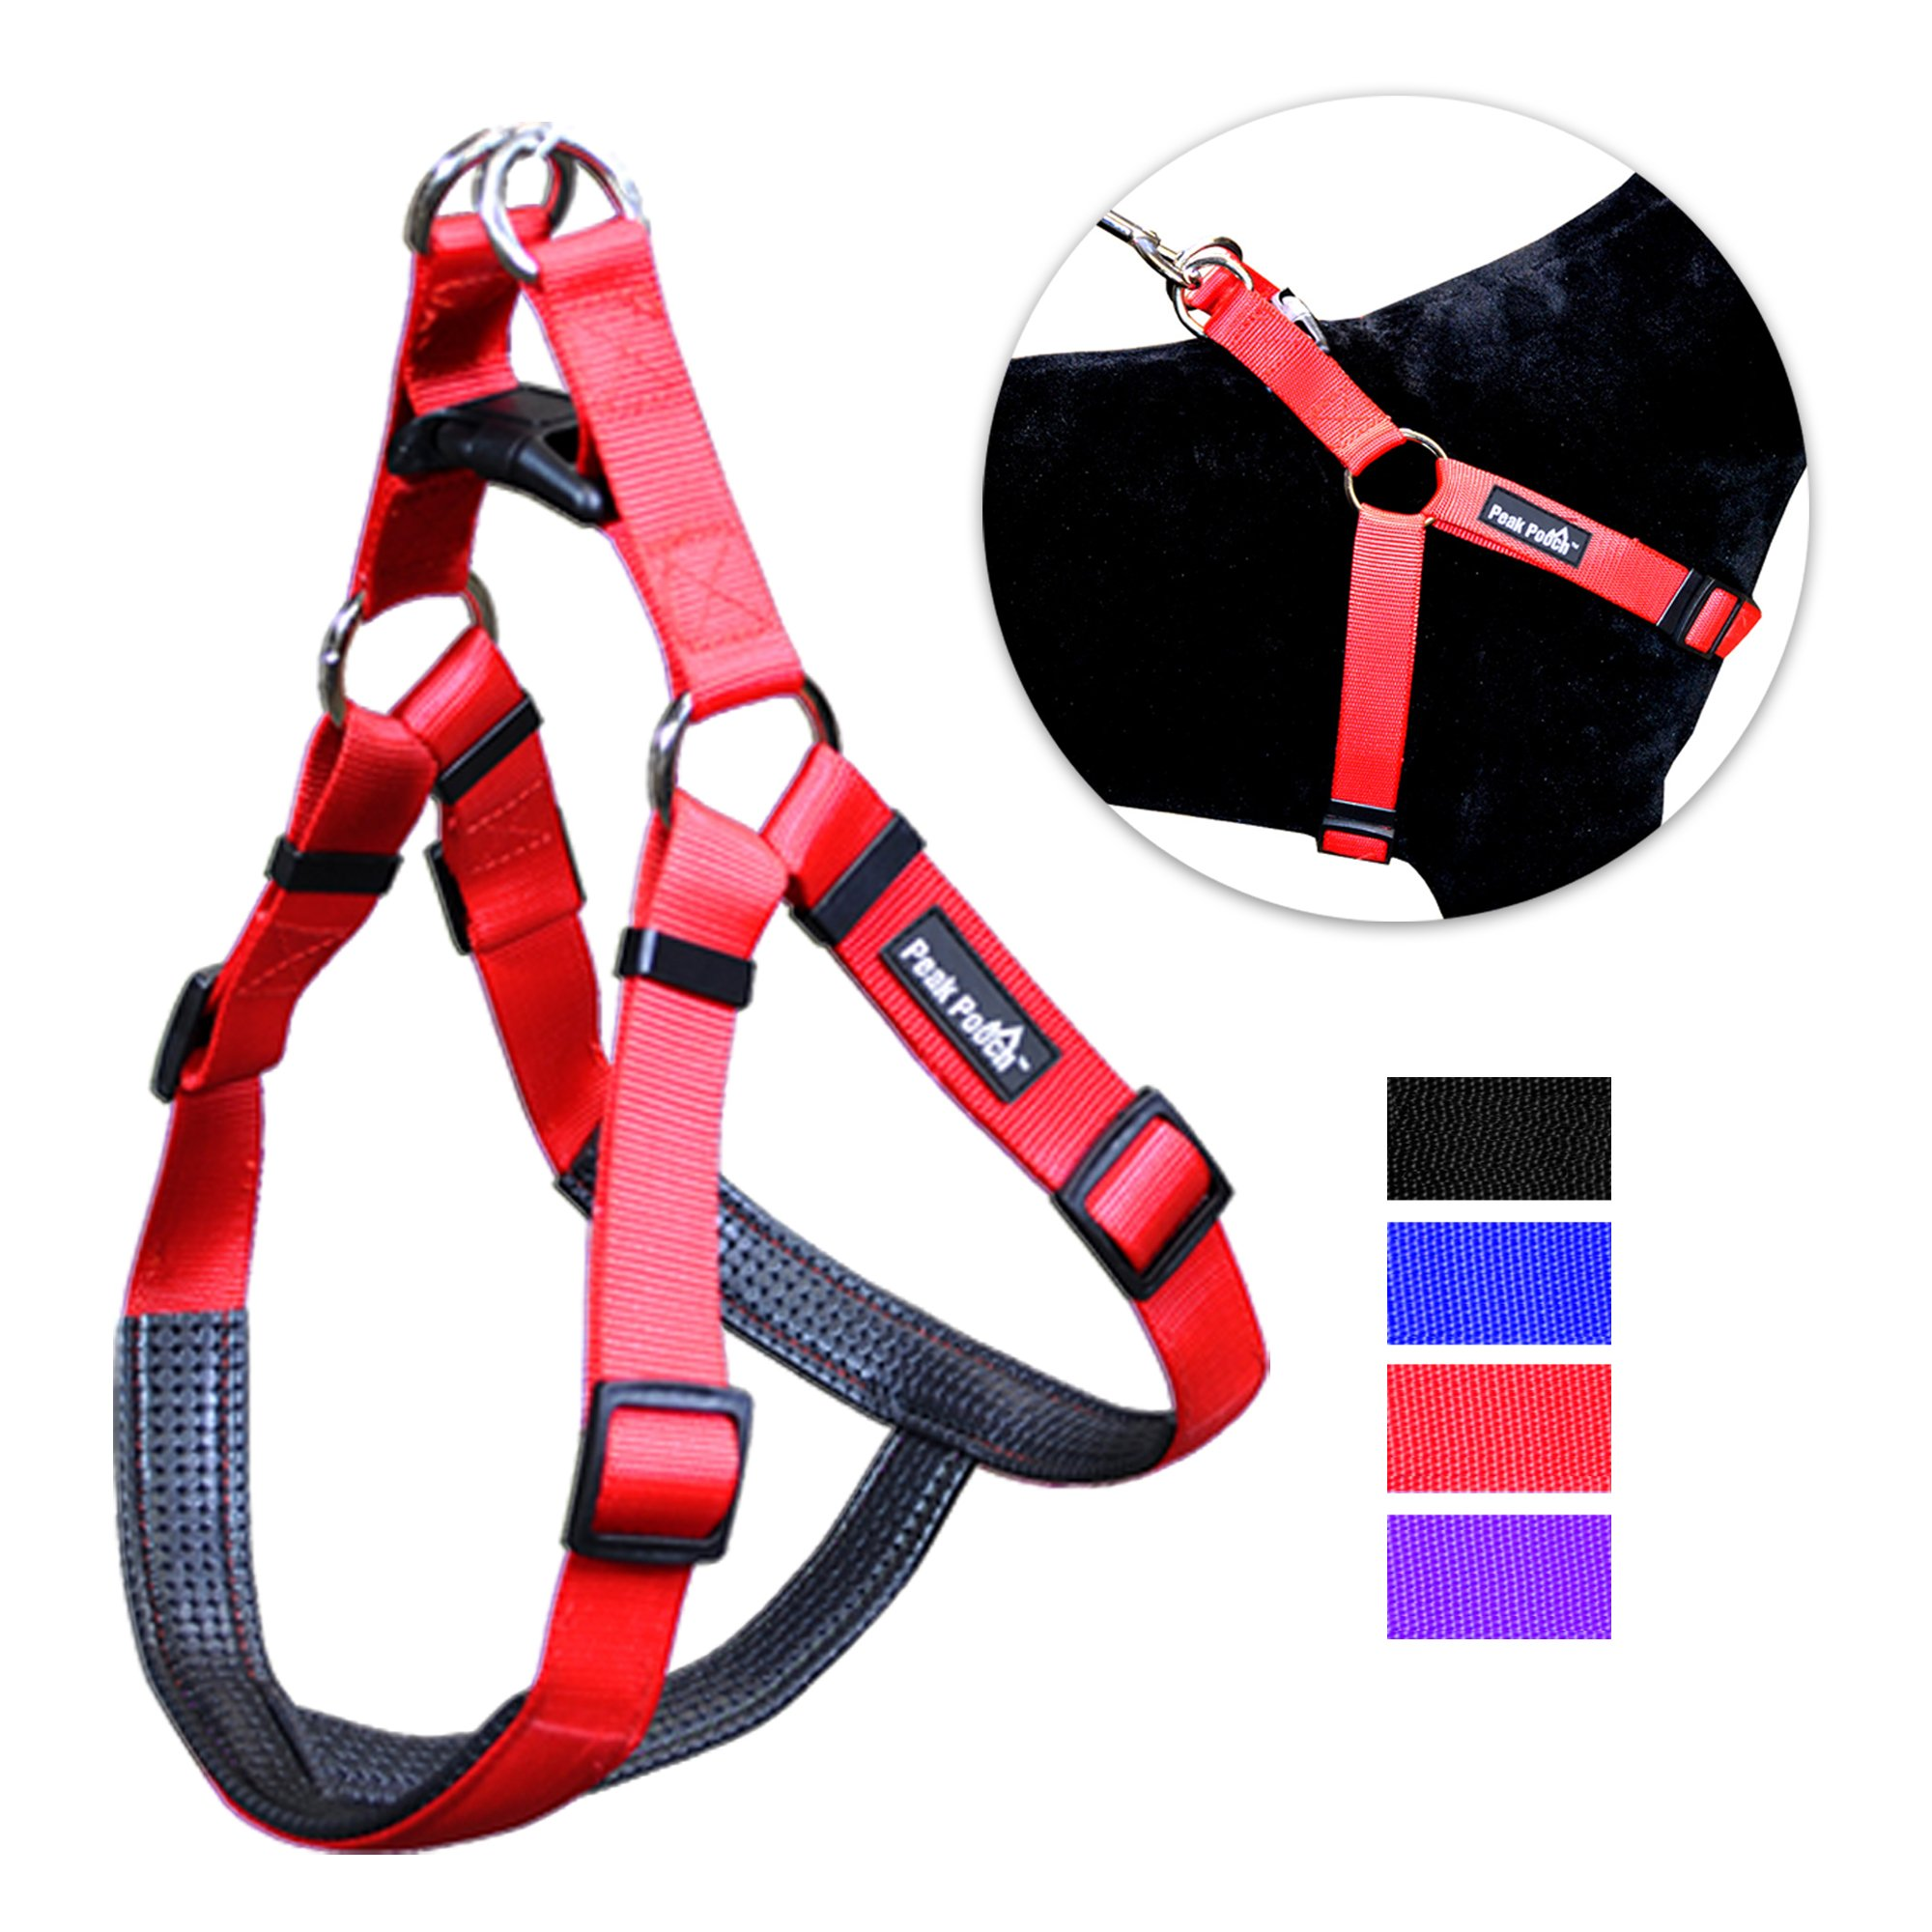 No Pull Padded Comfort Nylon Dog Walking Harness for Small, Medium, and Large Dogs